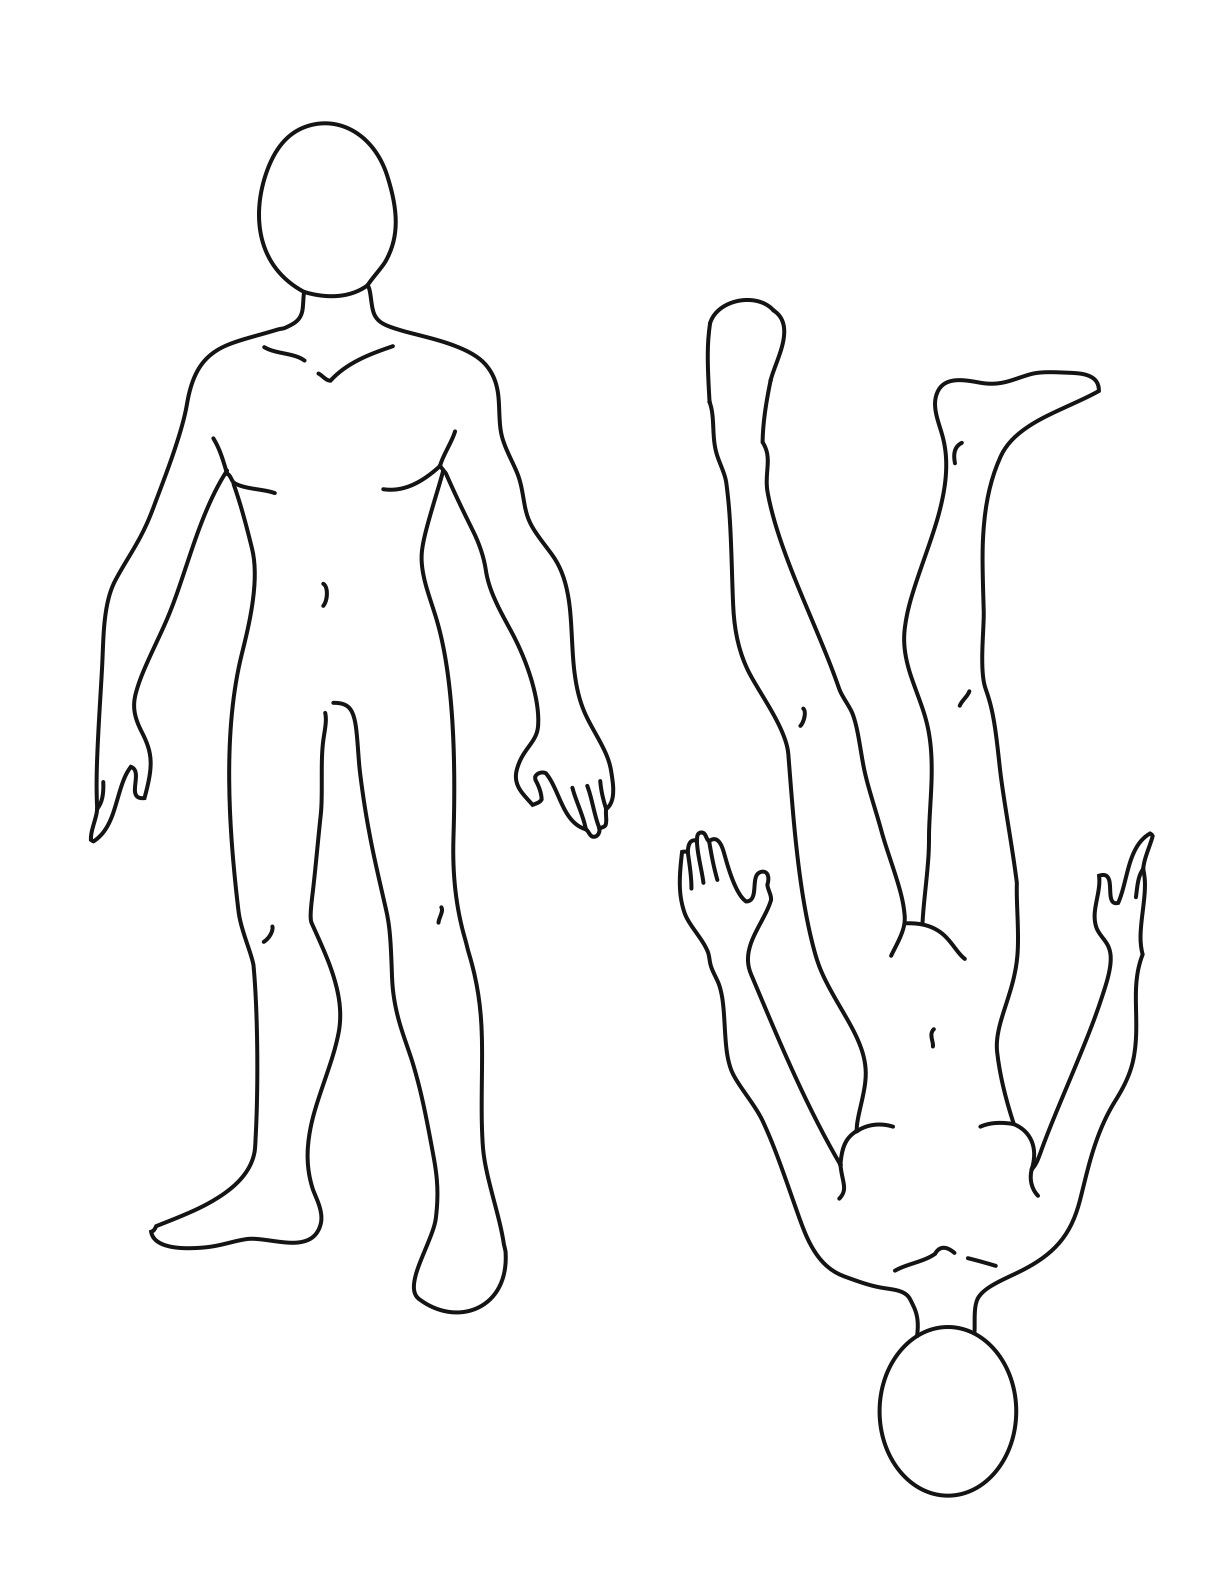 Human body outline printable cliparts pin figure drawing poses male cake on pinterest maxwellsz